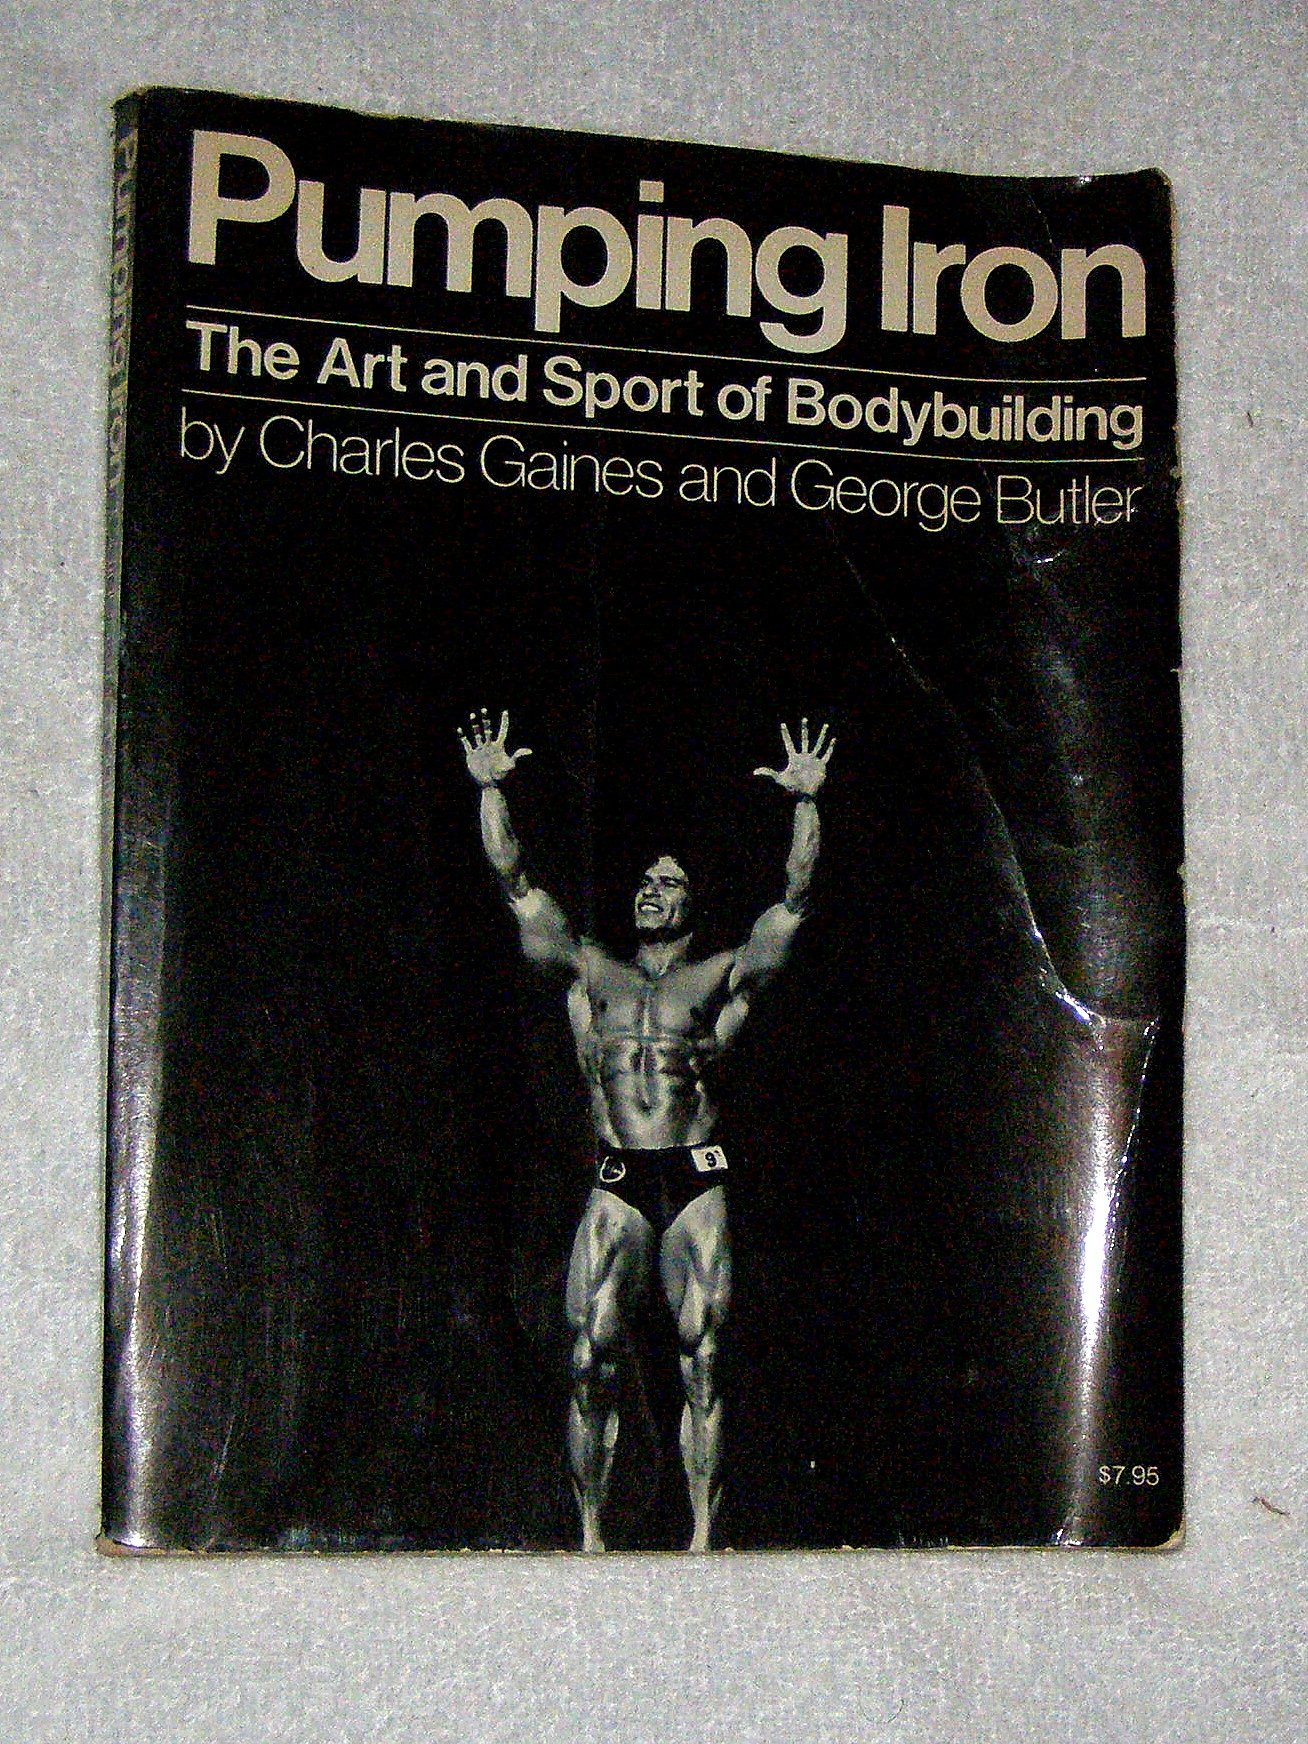 Title: Pumping Iron The Art and Sport of Bodybuilding: Amazon ...